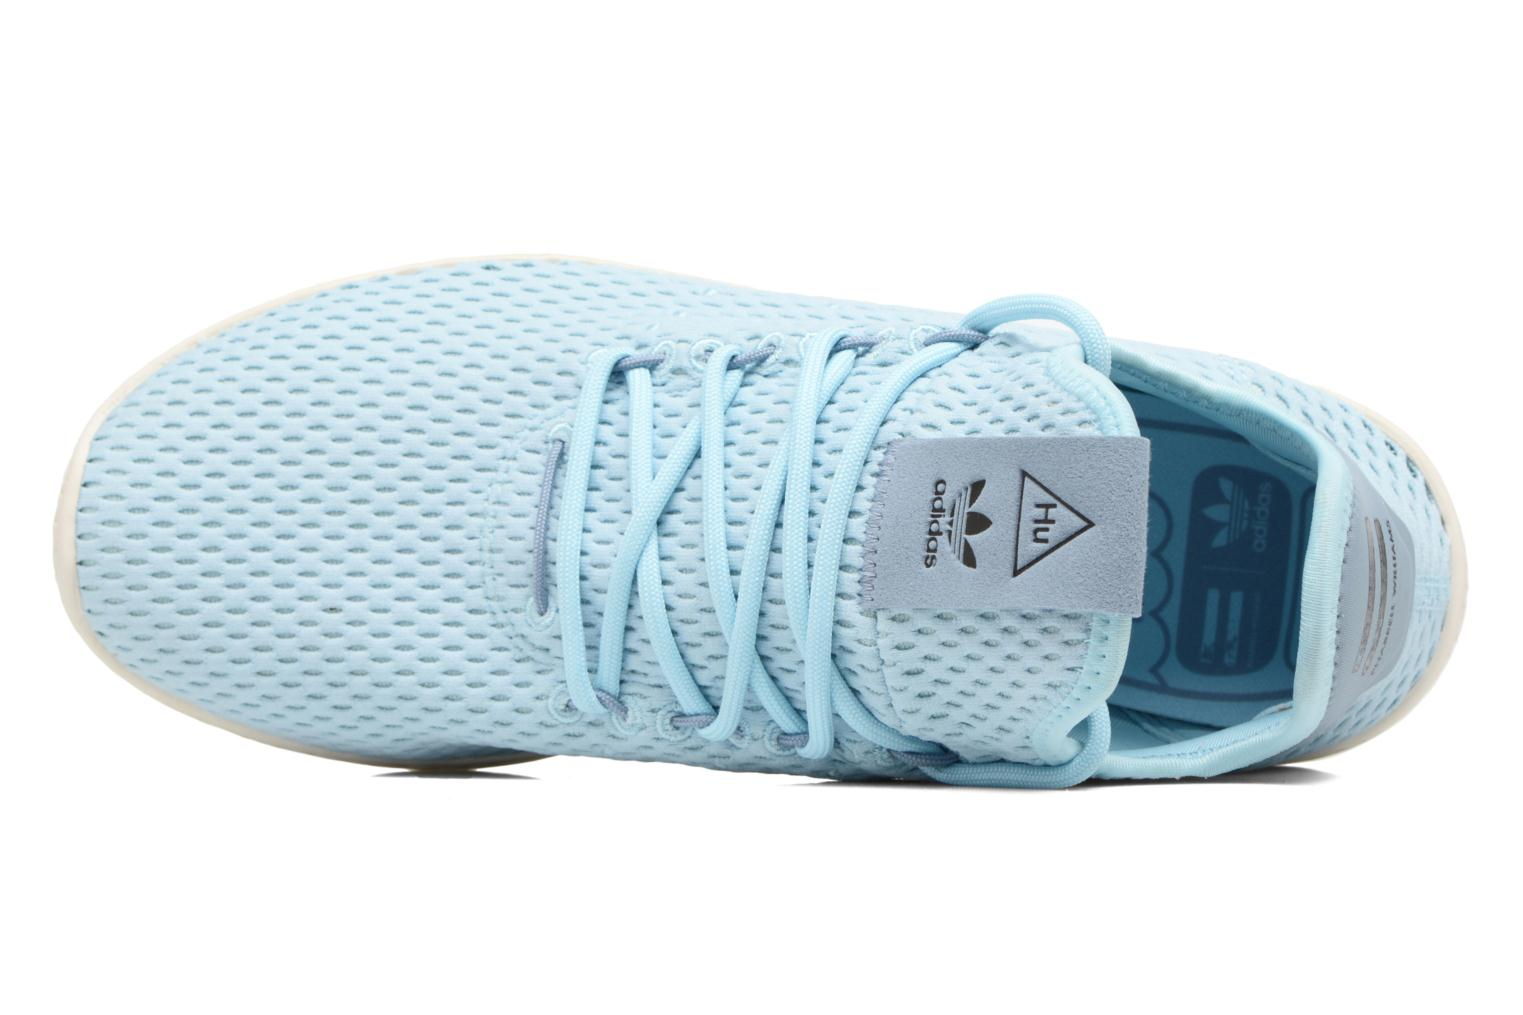 Pharrell Williams Tennis Hu Blegla/Blegla/Bletac